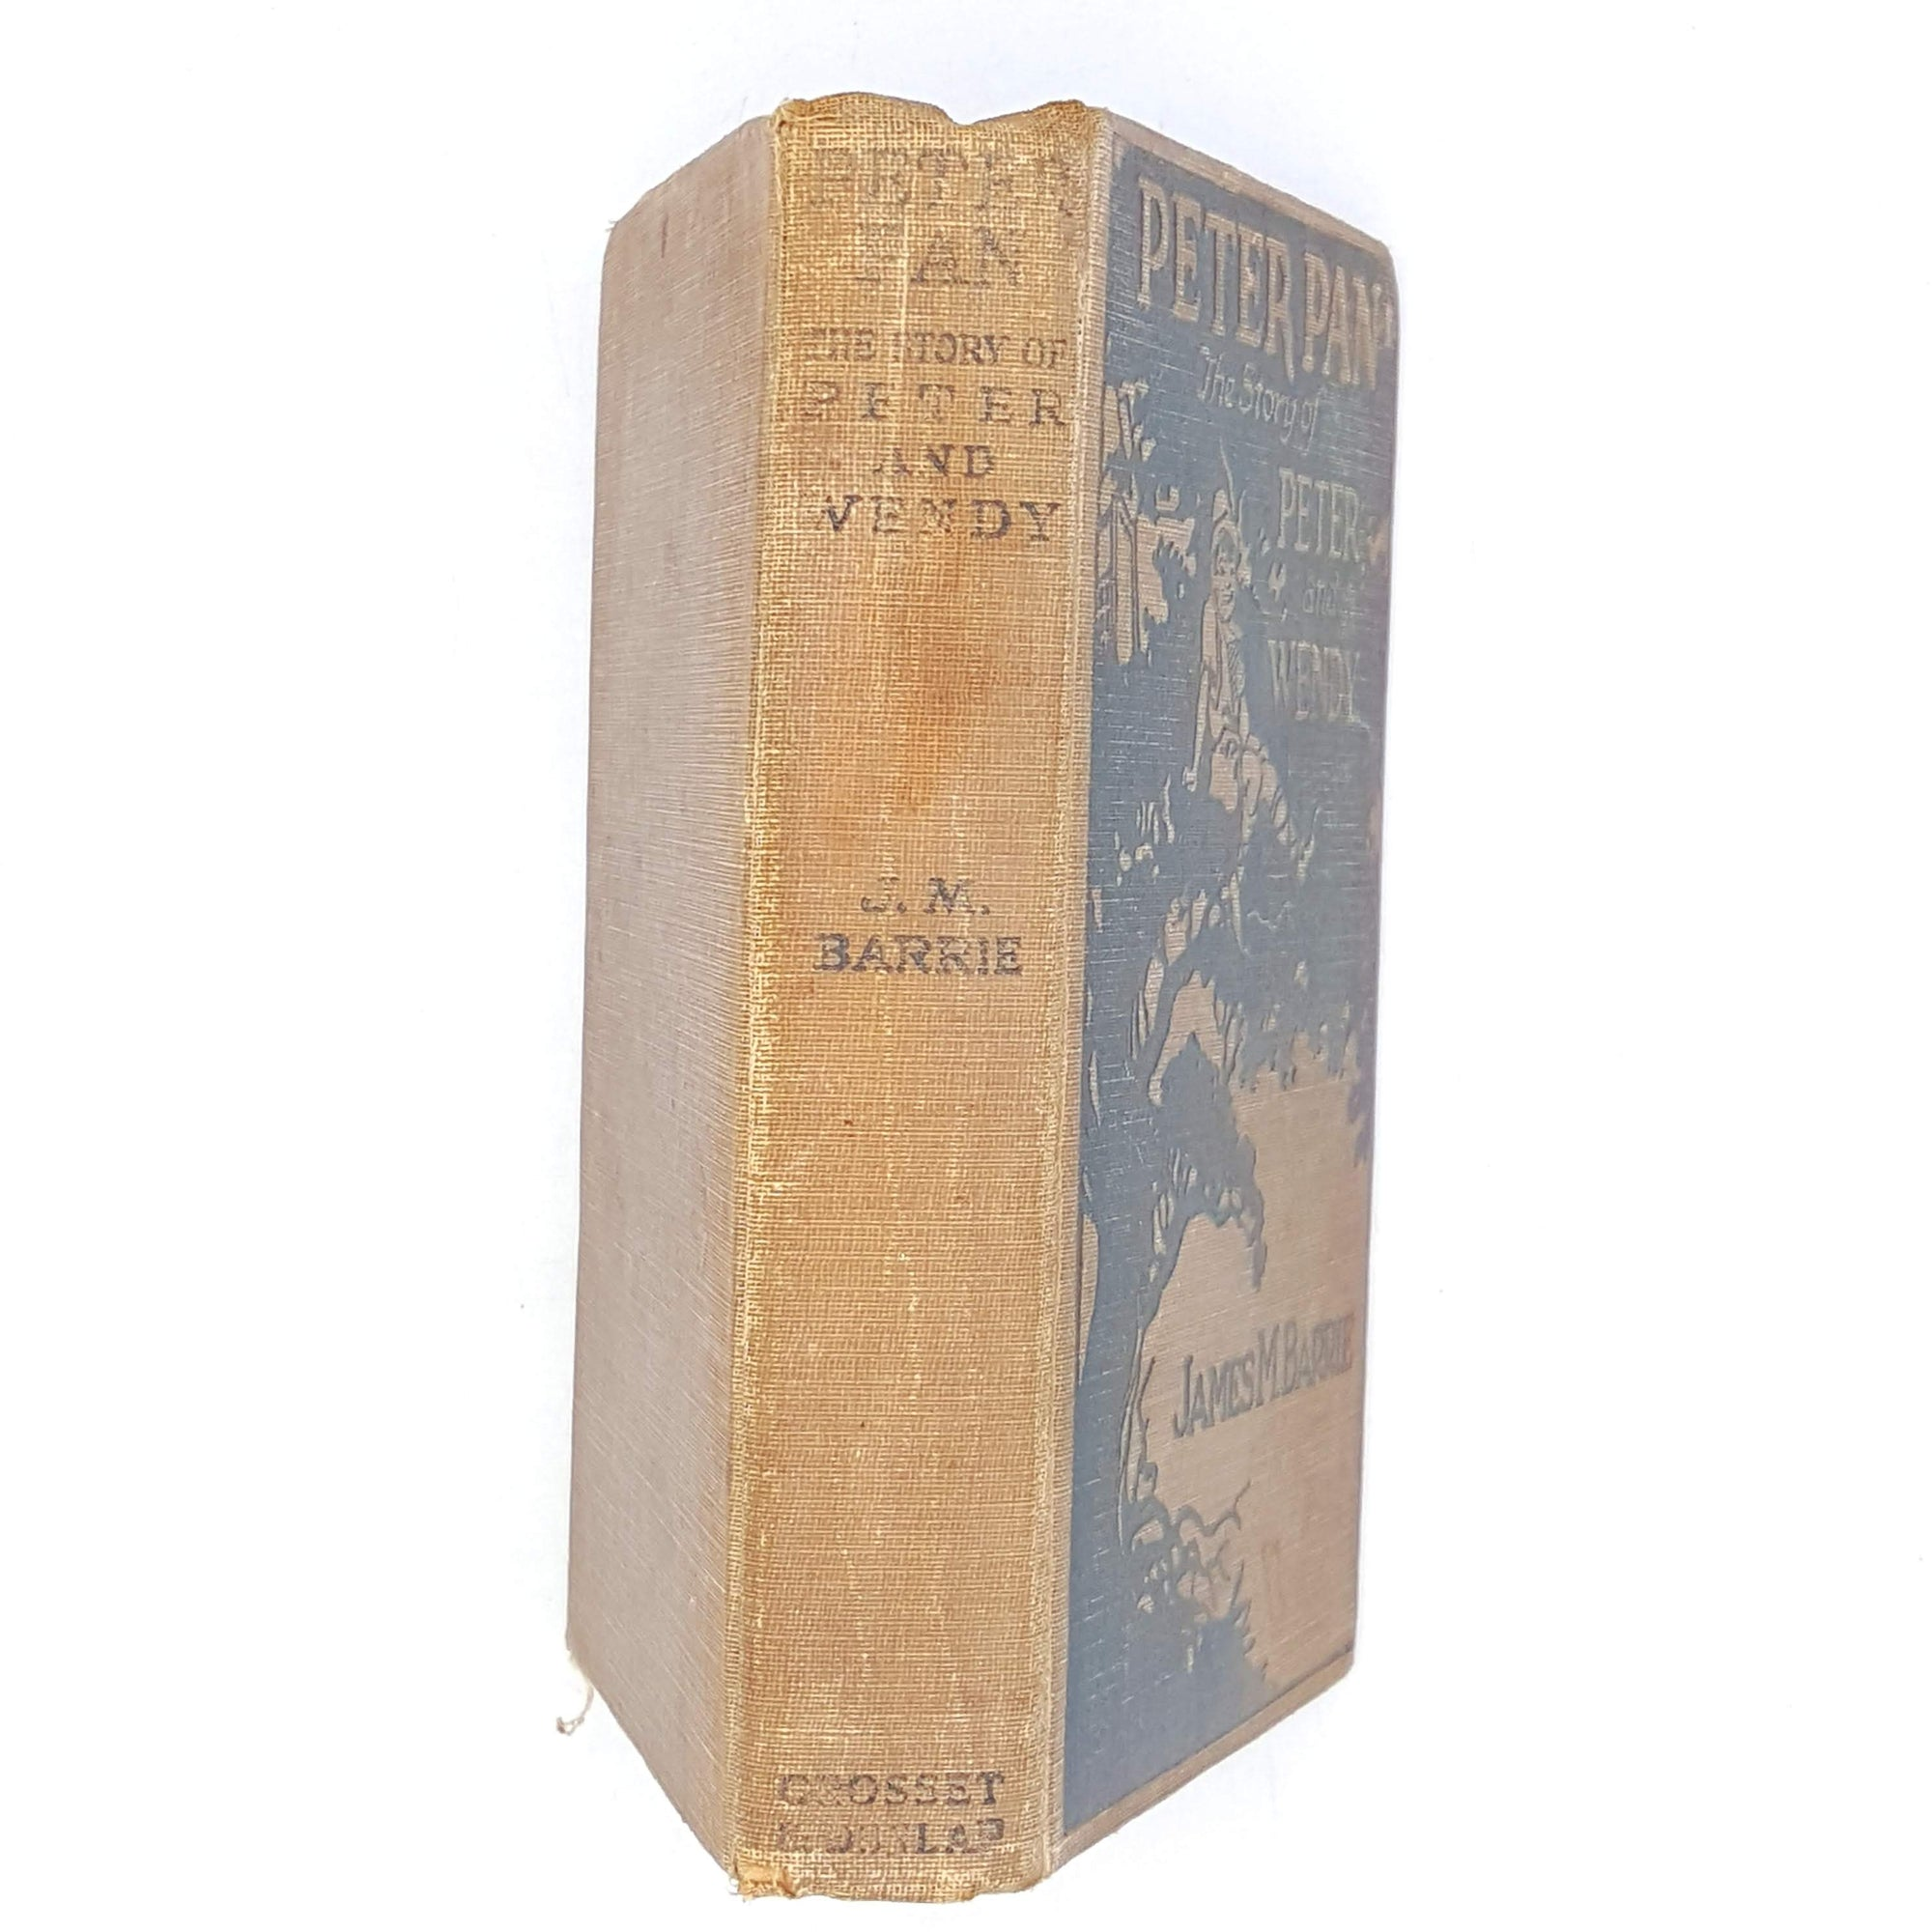 Peter Pan, The Story of Peter and Wendy by J. M. Barrie 1911